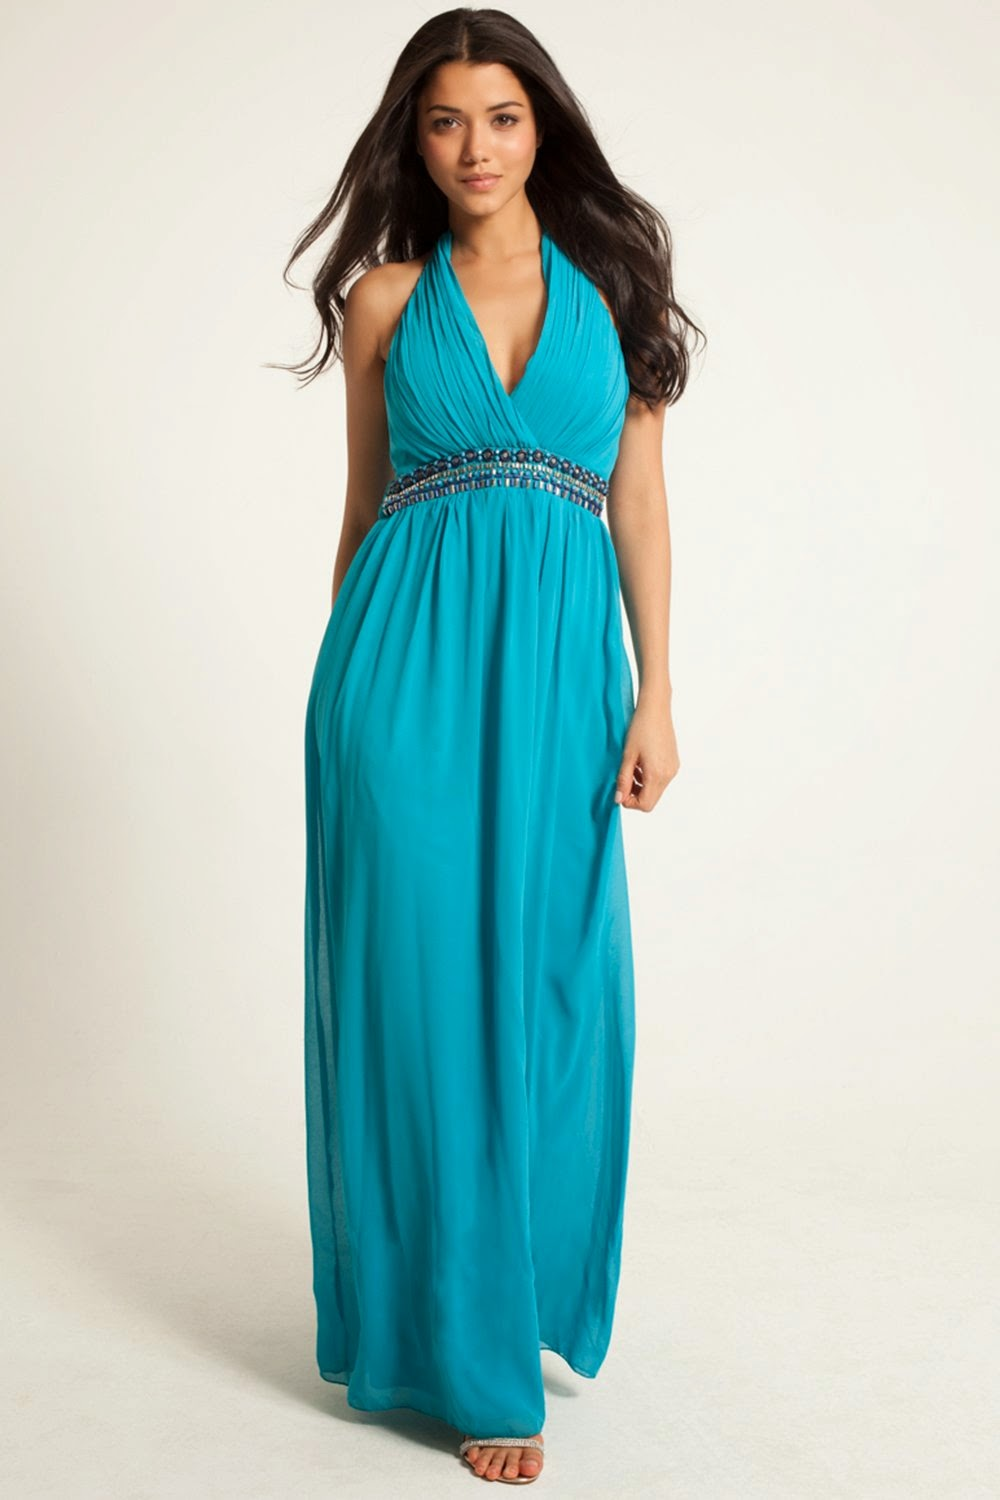 Choose a flowy V-back chiffon maxi dress for beach-lounging, or accessorize a simple surplice sweater dress and sizzle everywhere you go. Get Inspired with Dresses for Tall Women Bohemian-inspired and perfect for warm weather, maxi dresses for tall women pair well with sandals and is .